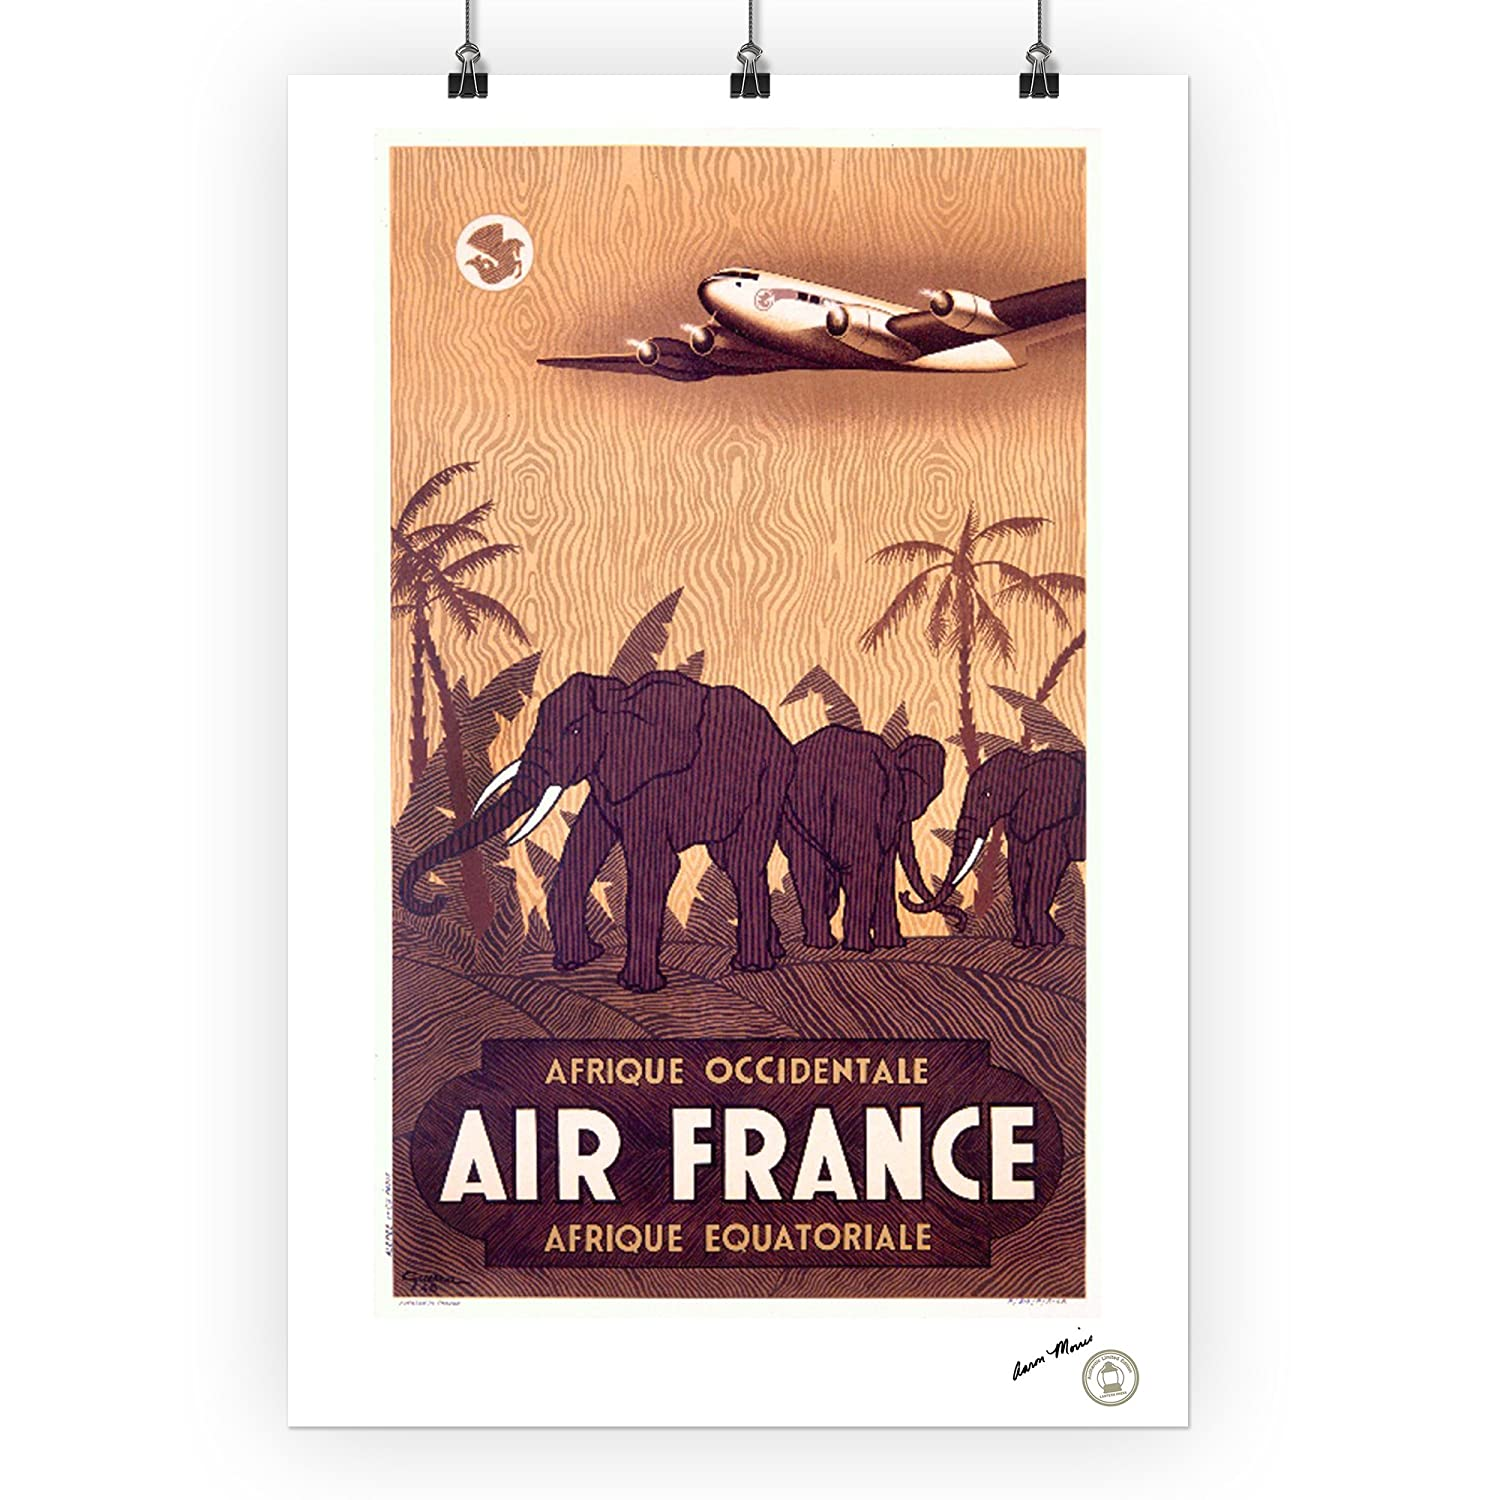 Amazoncom Air France Afrique Elephants Vintage Poster